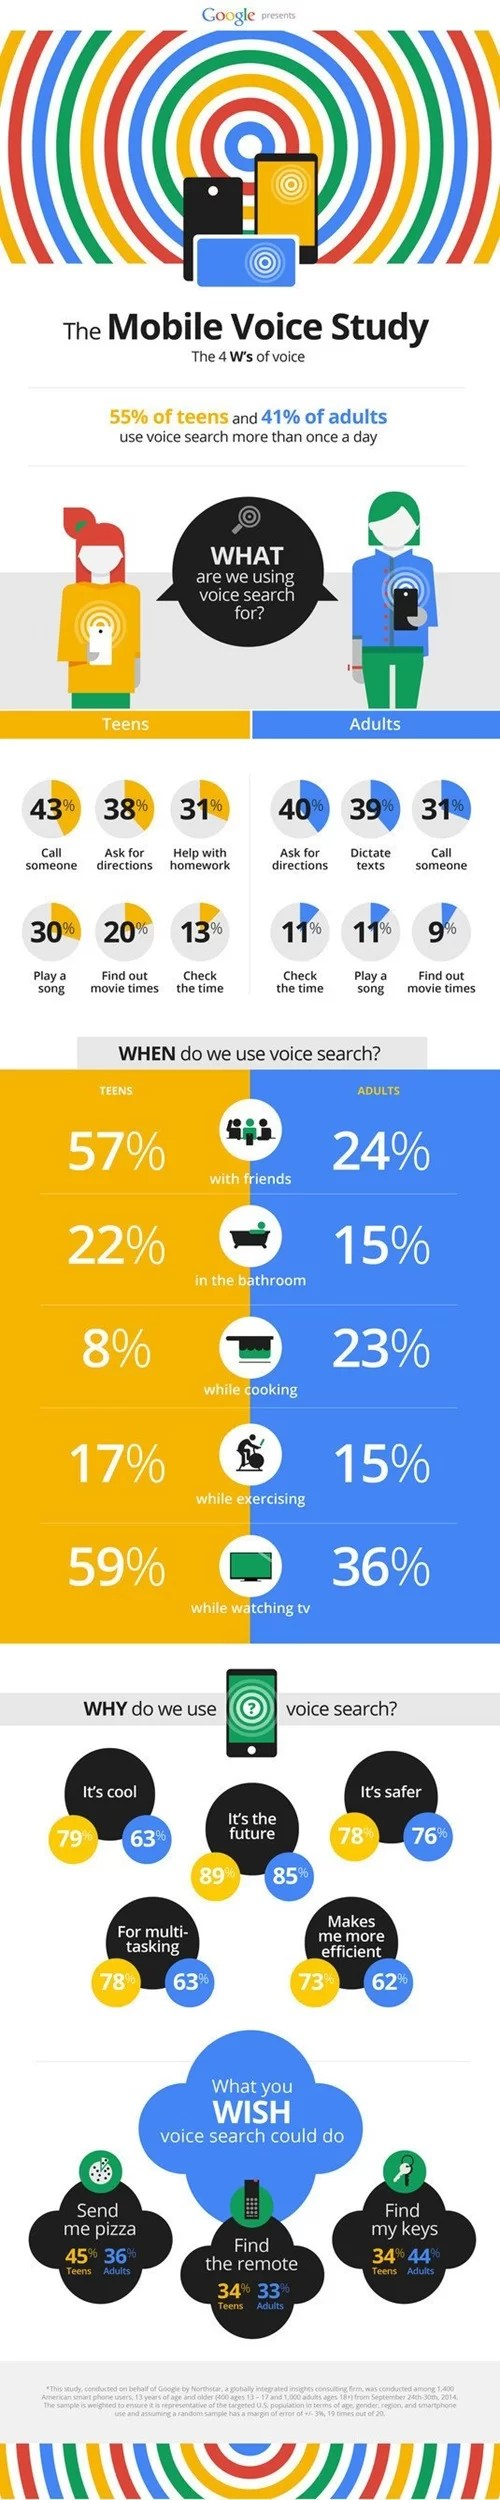 Google Mobile Voice Study Infographic